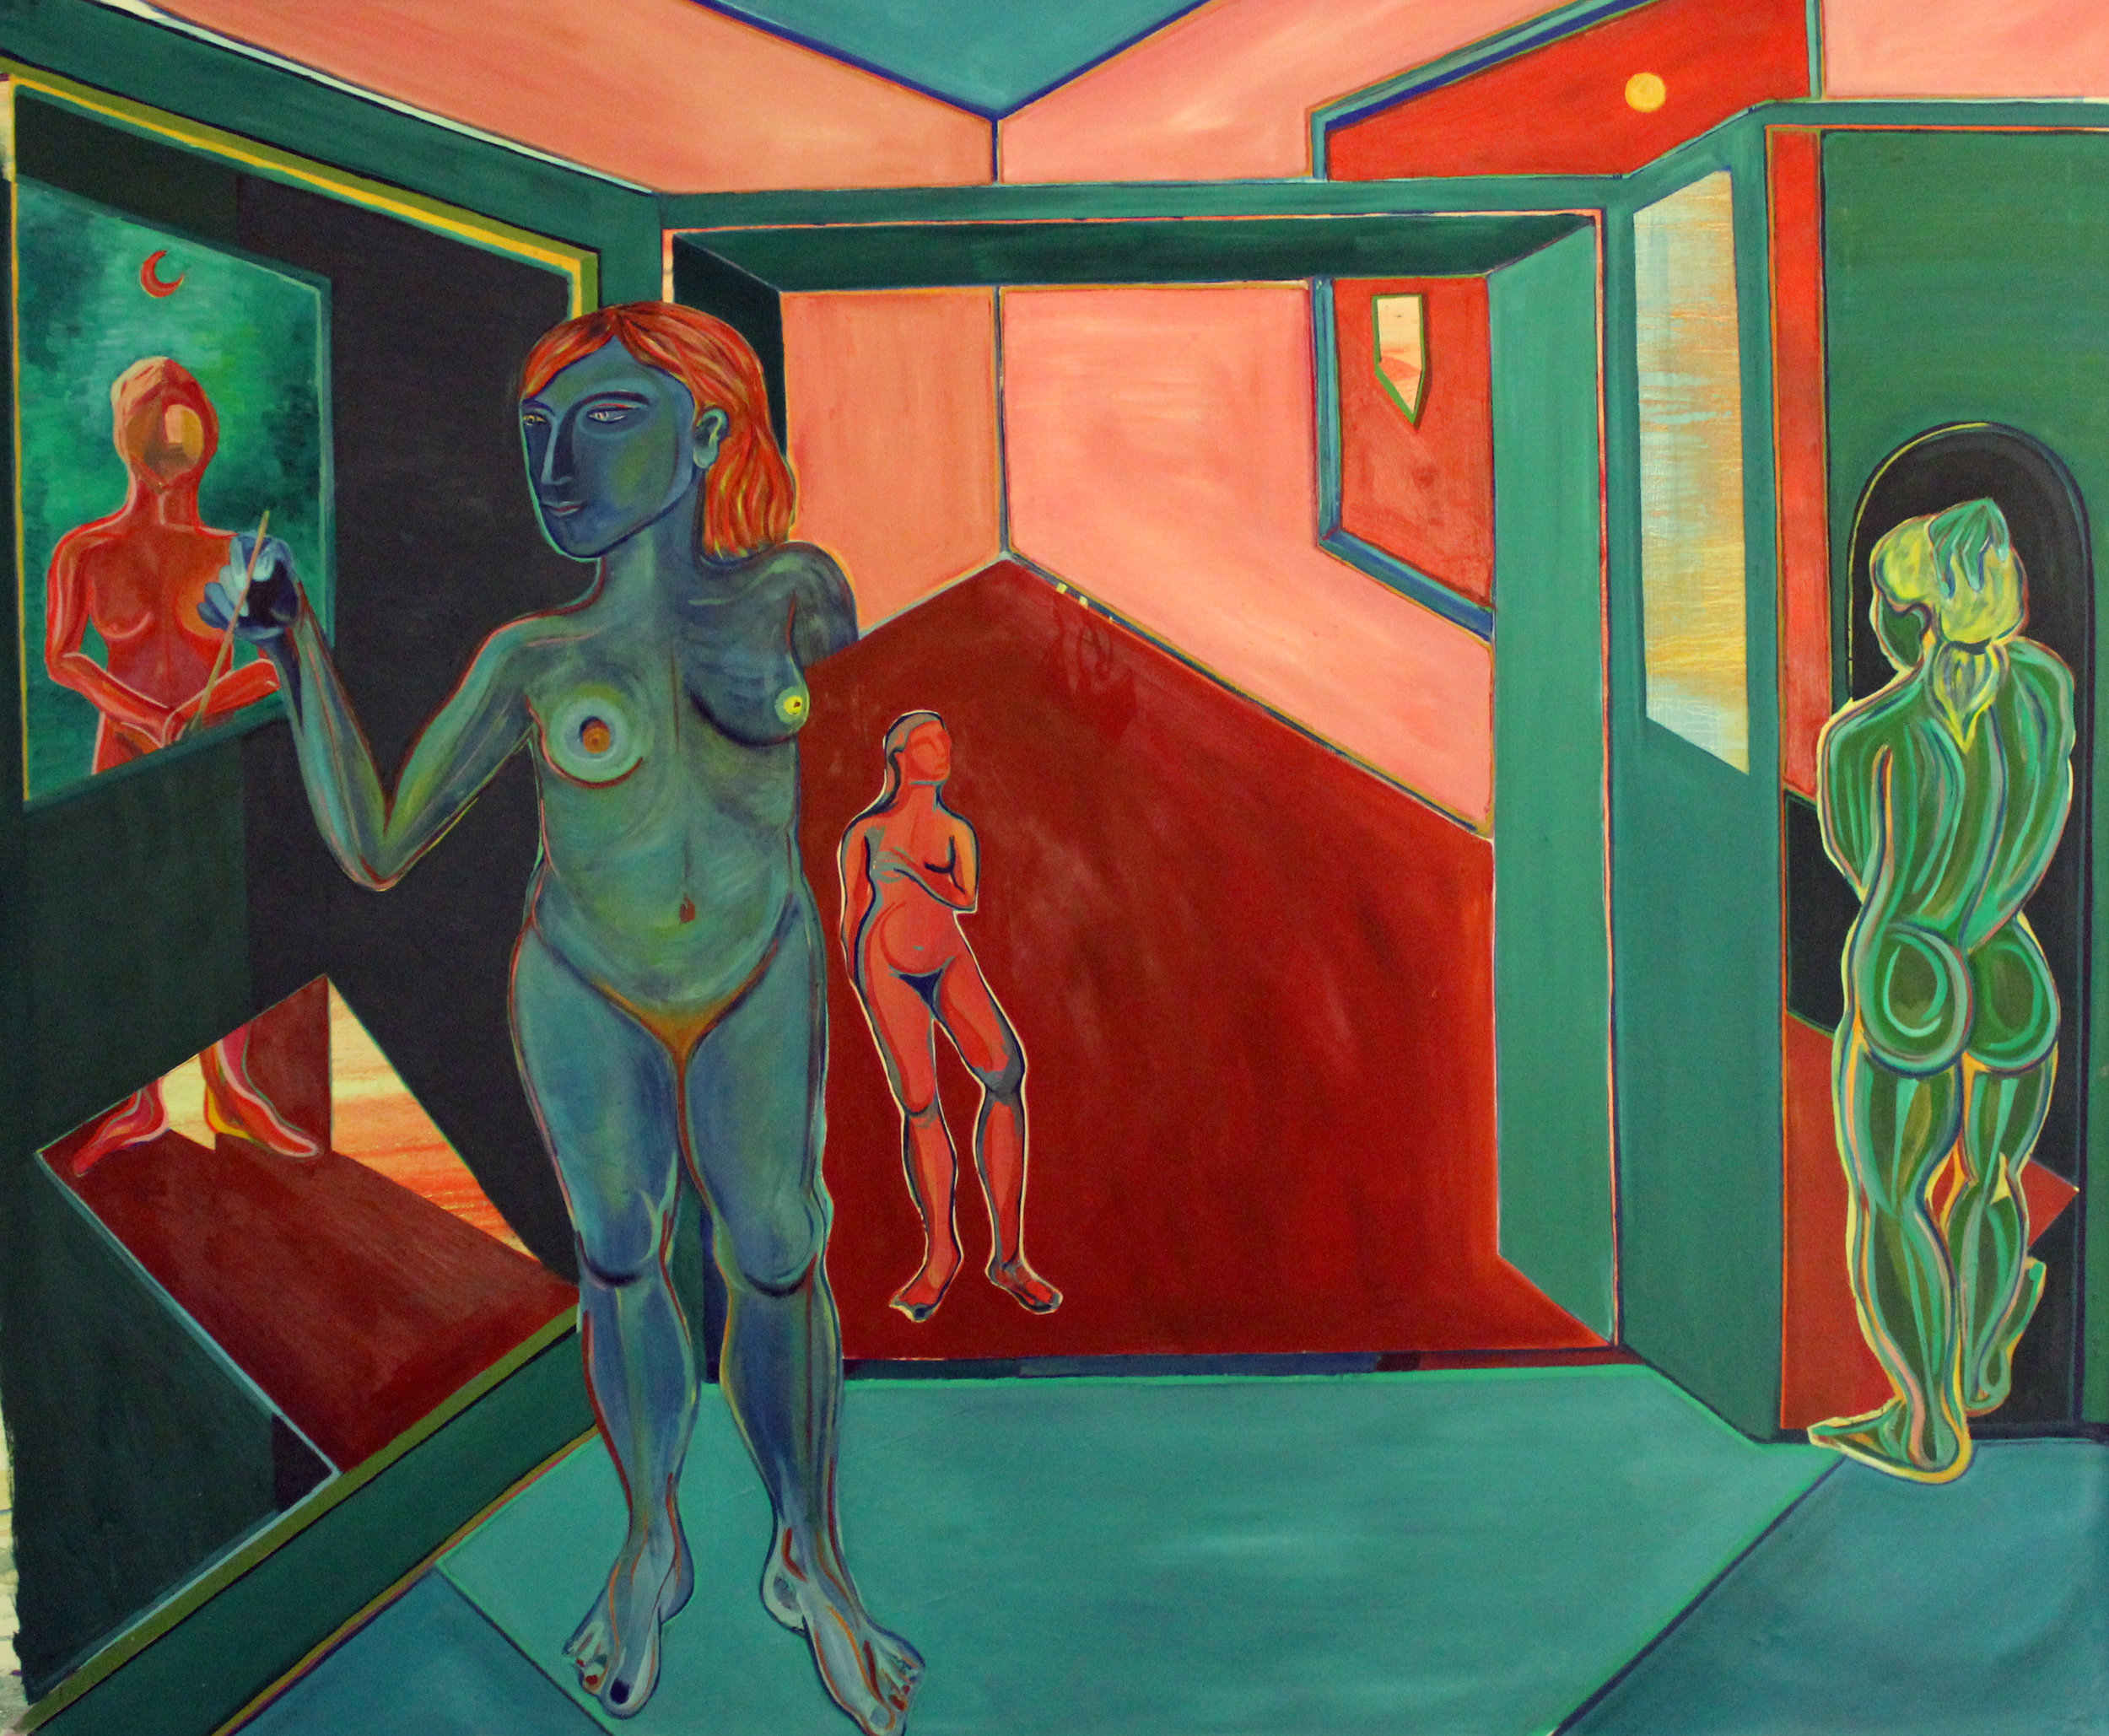 The Dream of Creation   Oil on canvas, 2,30x1,69 m / 7.5x5.5 ft